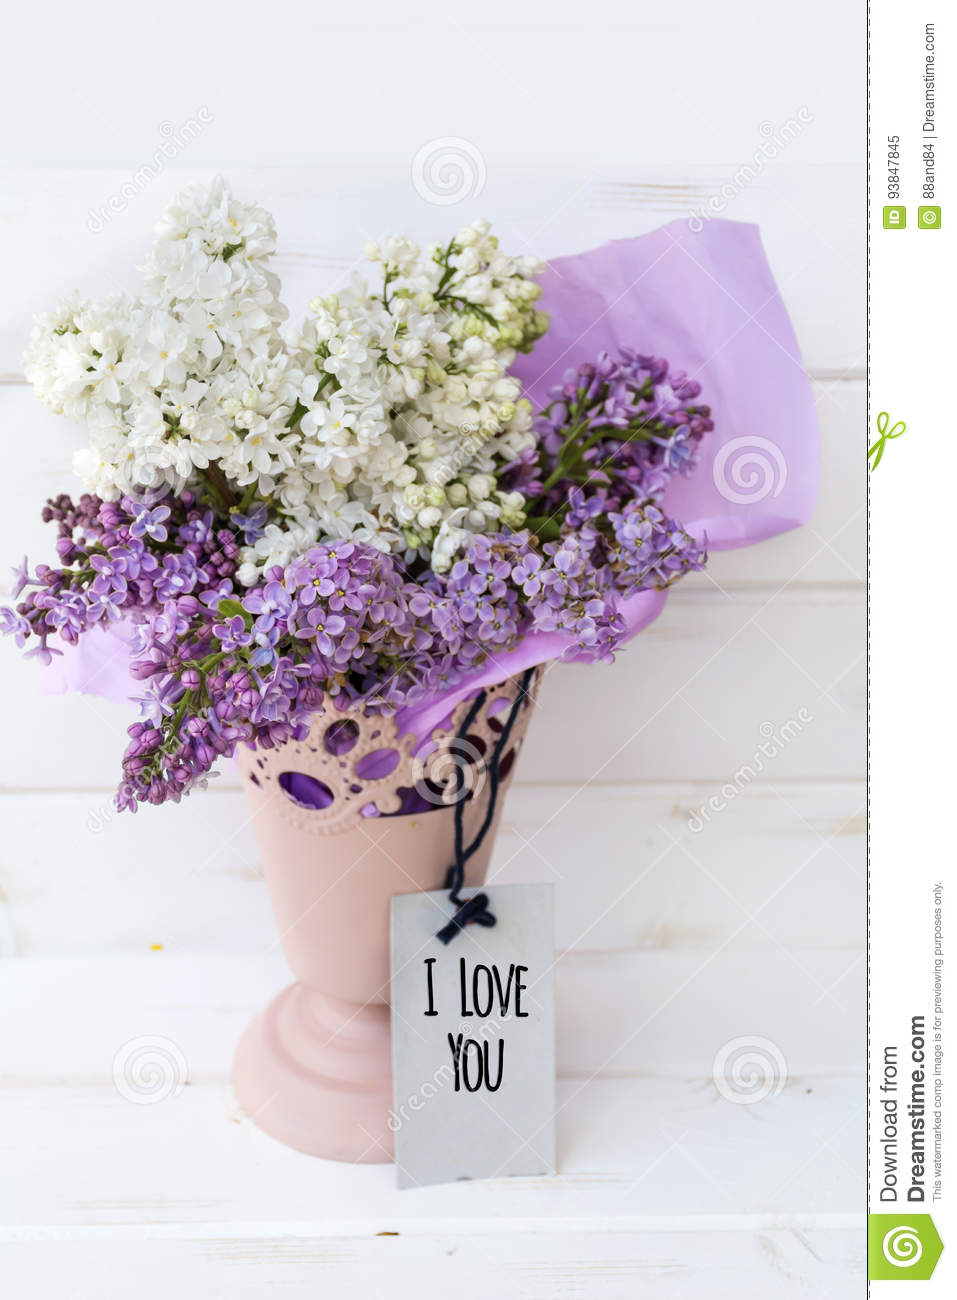 Beautiful Bouquet Of Lilac With I Love You Message Card Stock Image